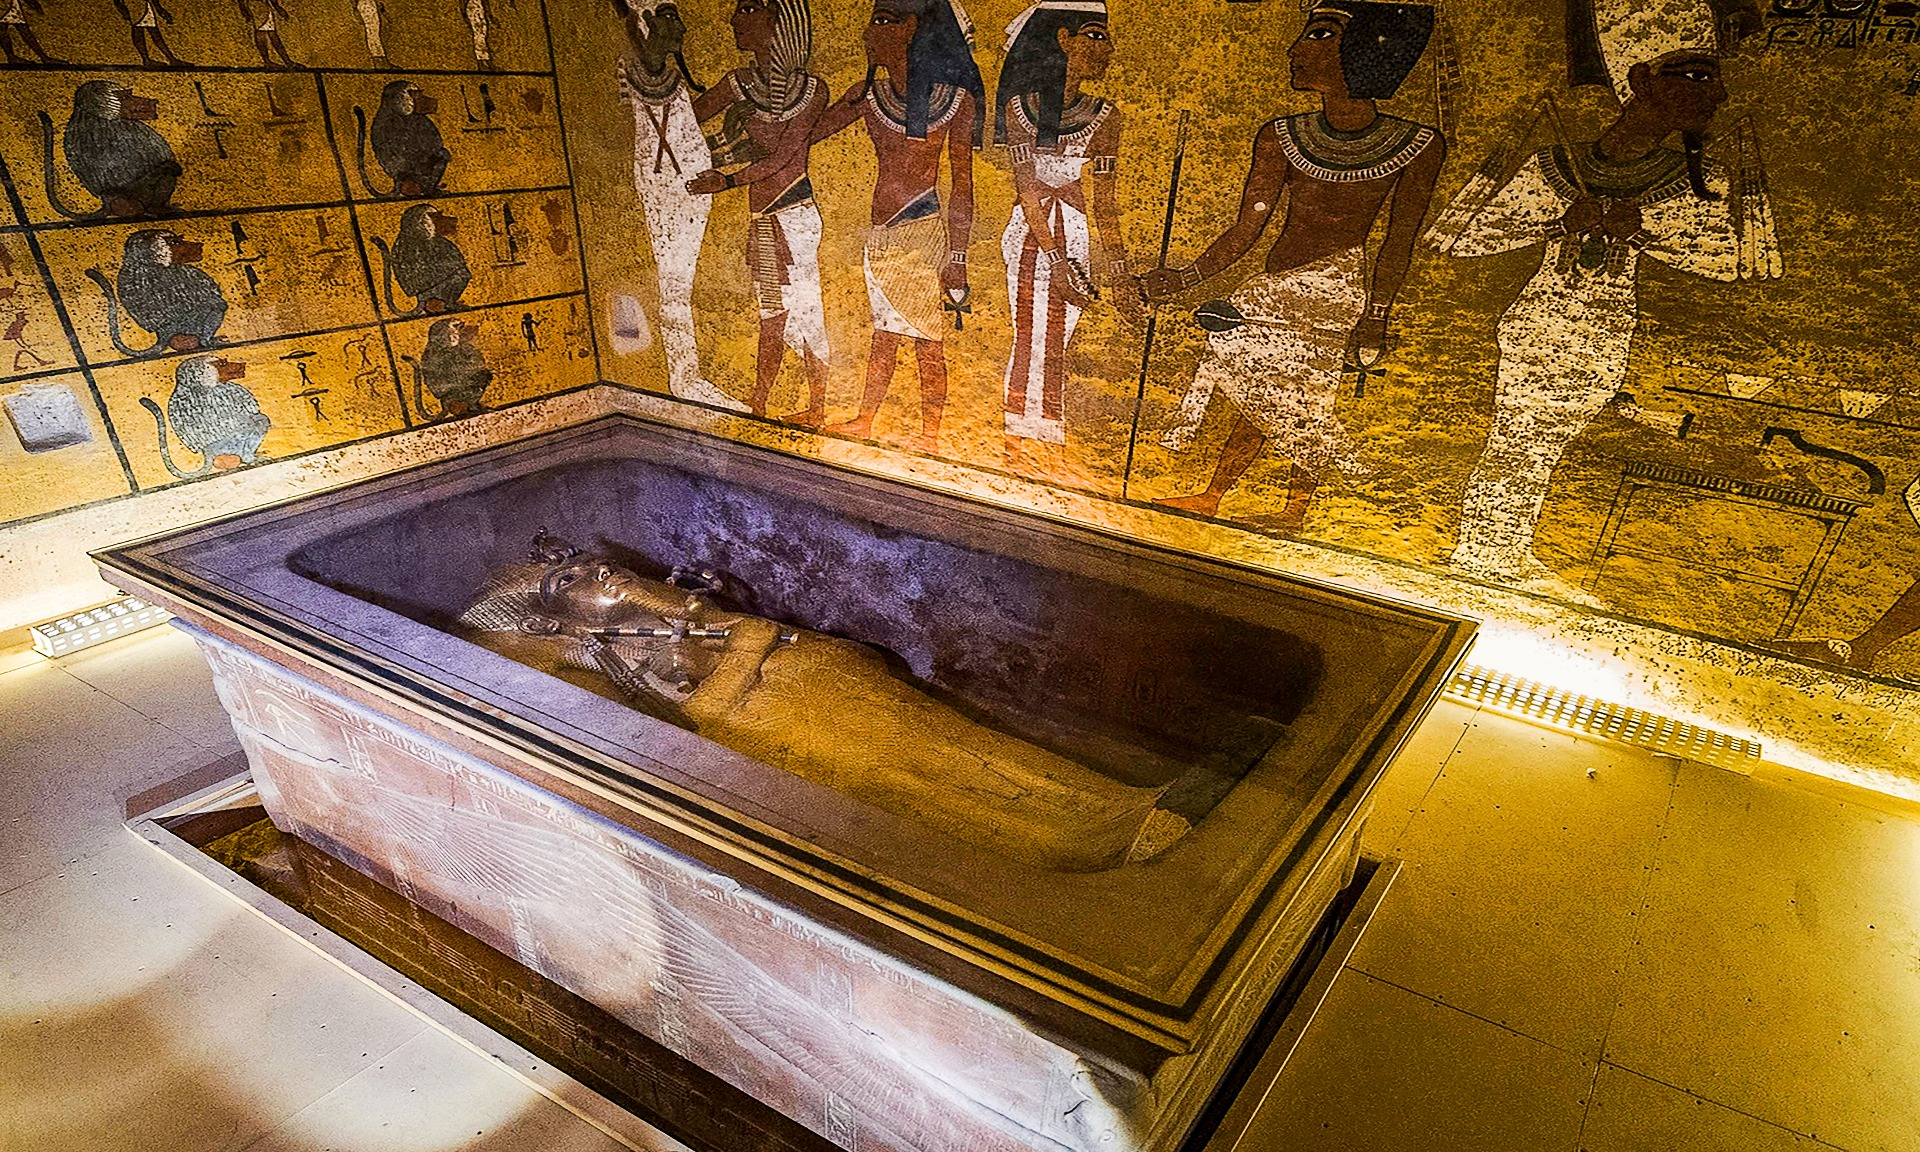 discover now about the truth of King Tut's Tomb, who found it and what was found in there, Find out now about the whole truth of it